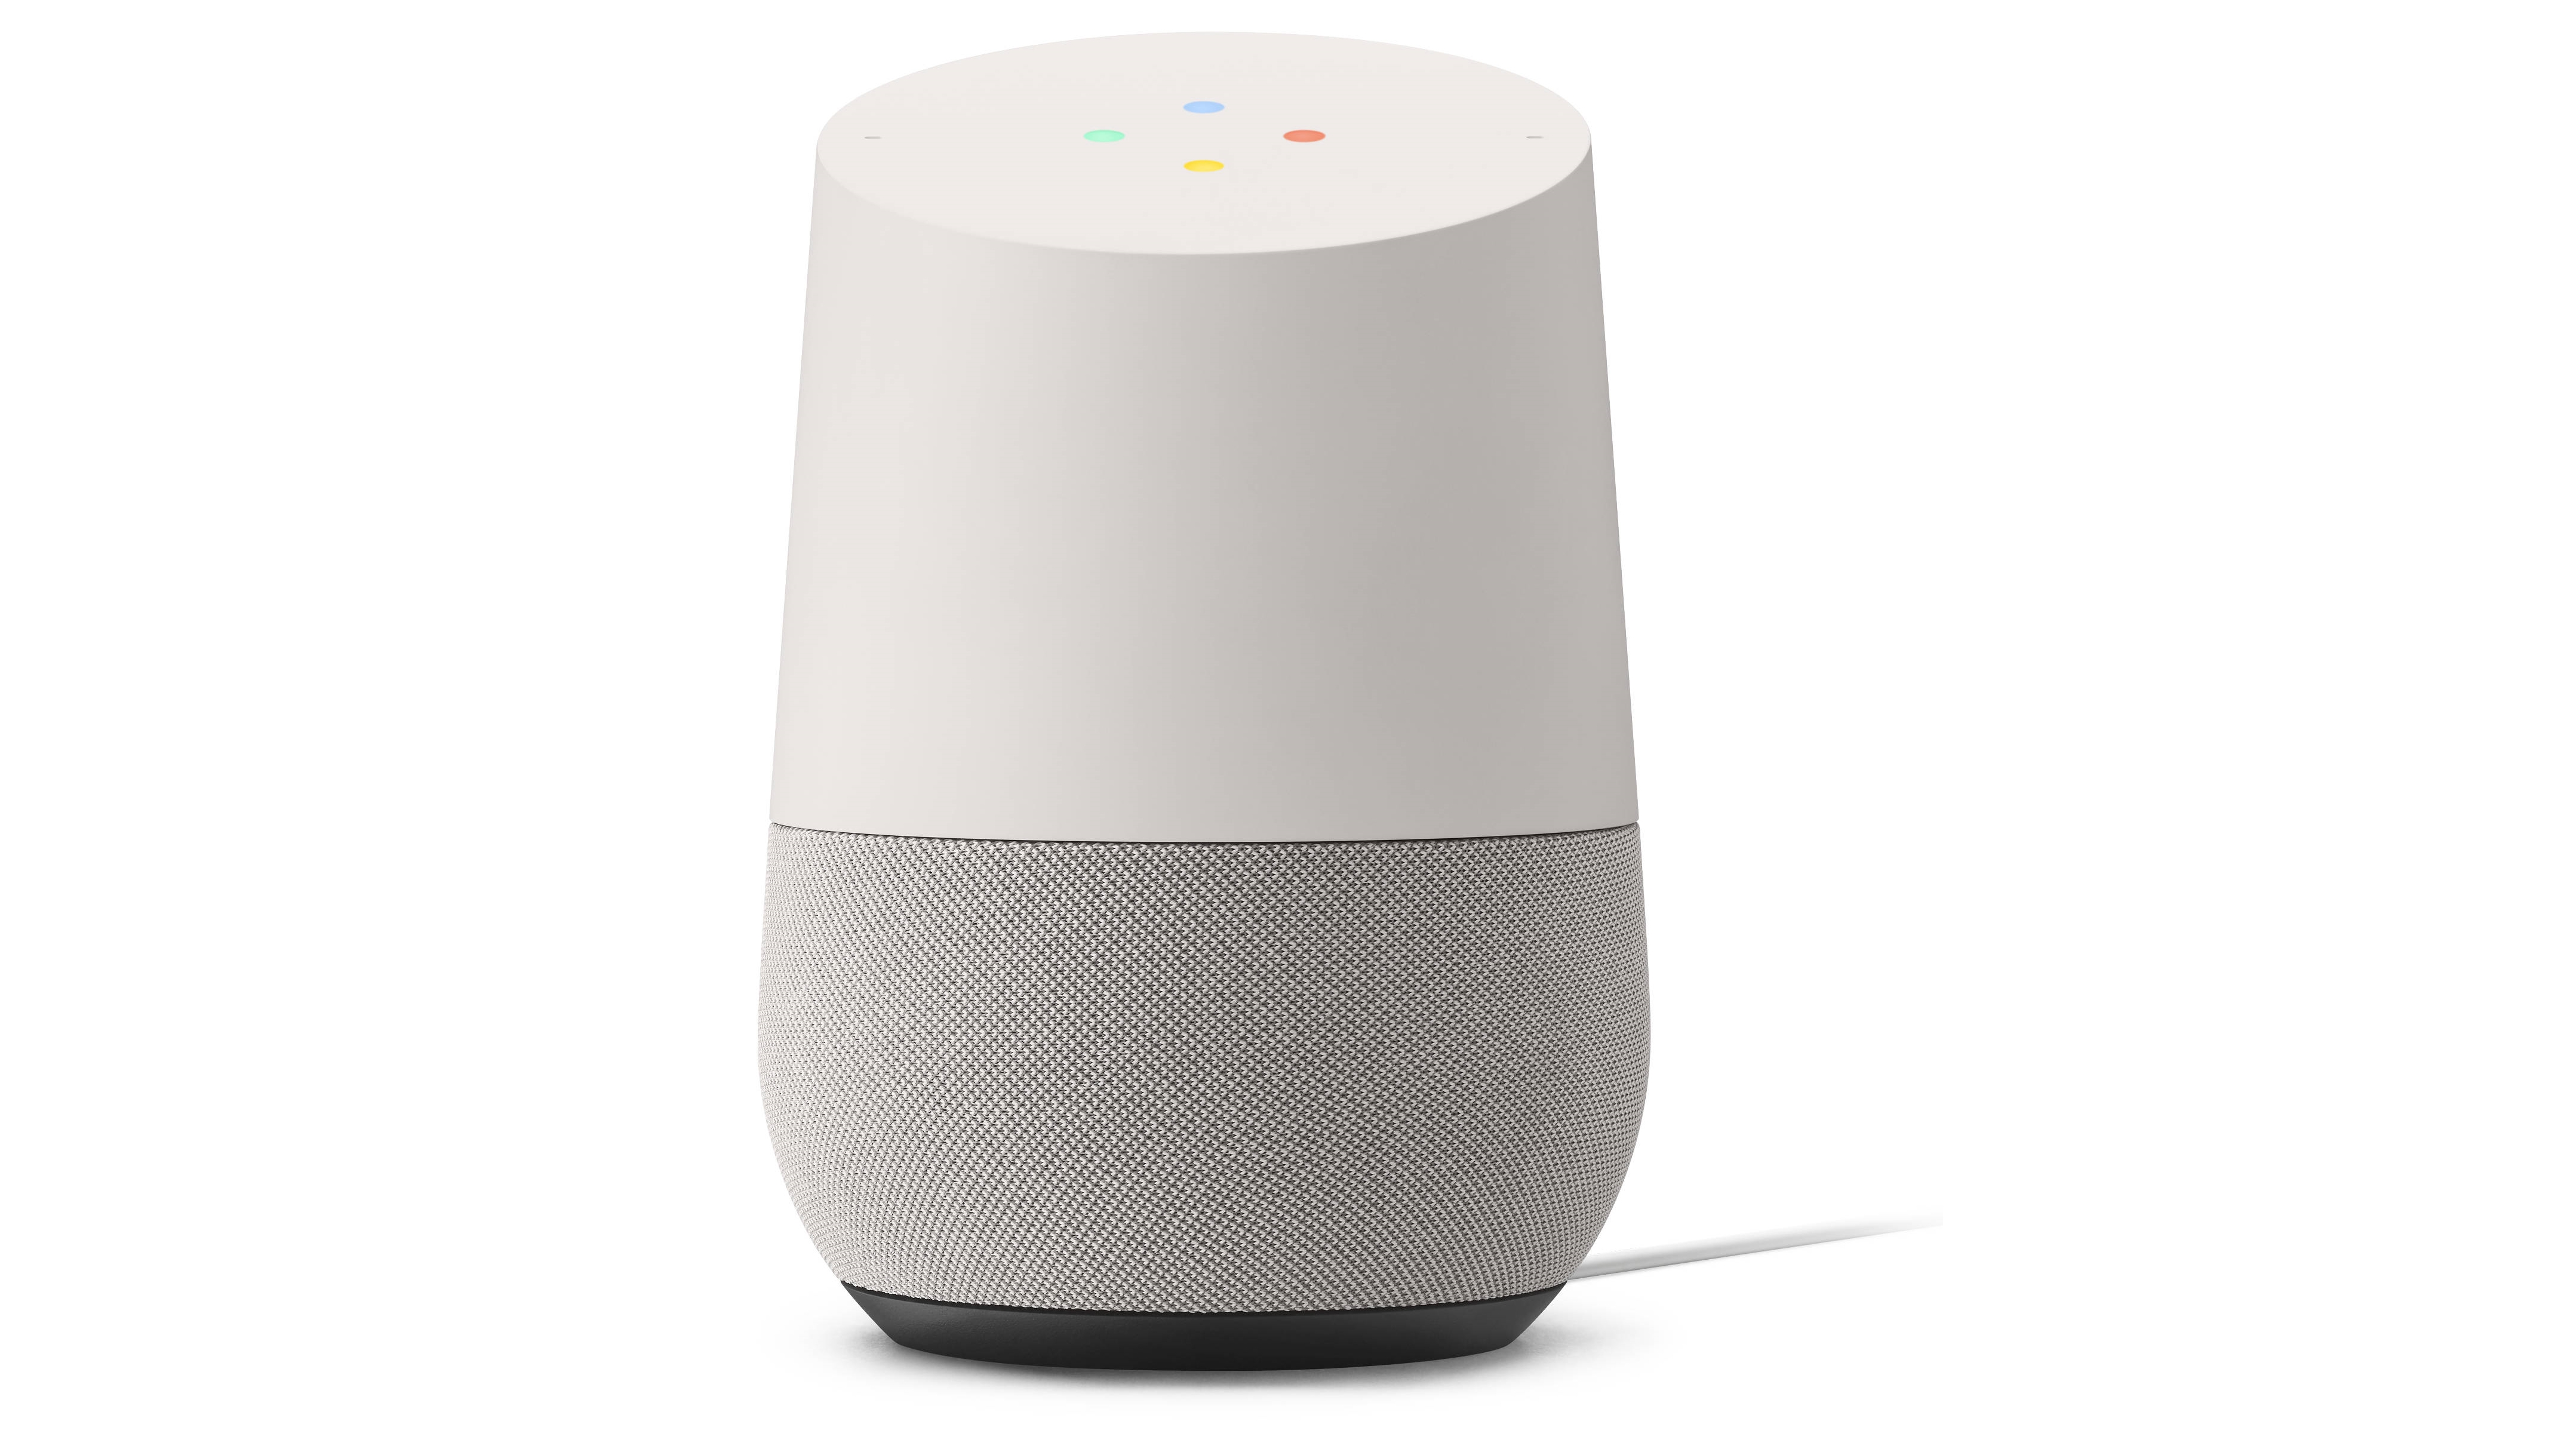 The best Google Home and Google Home Mini prices and deals in August 2018